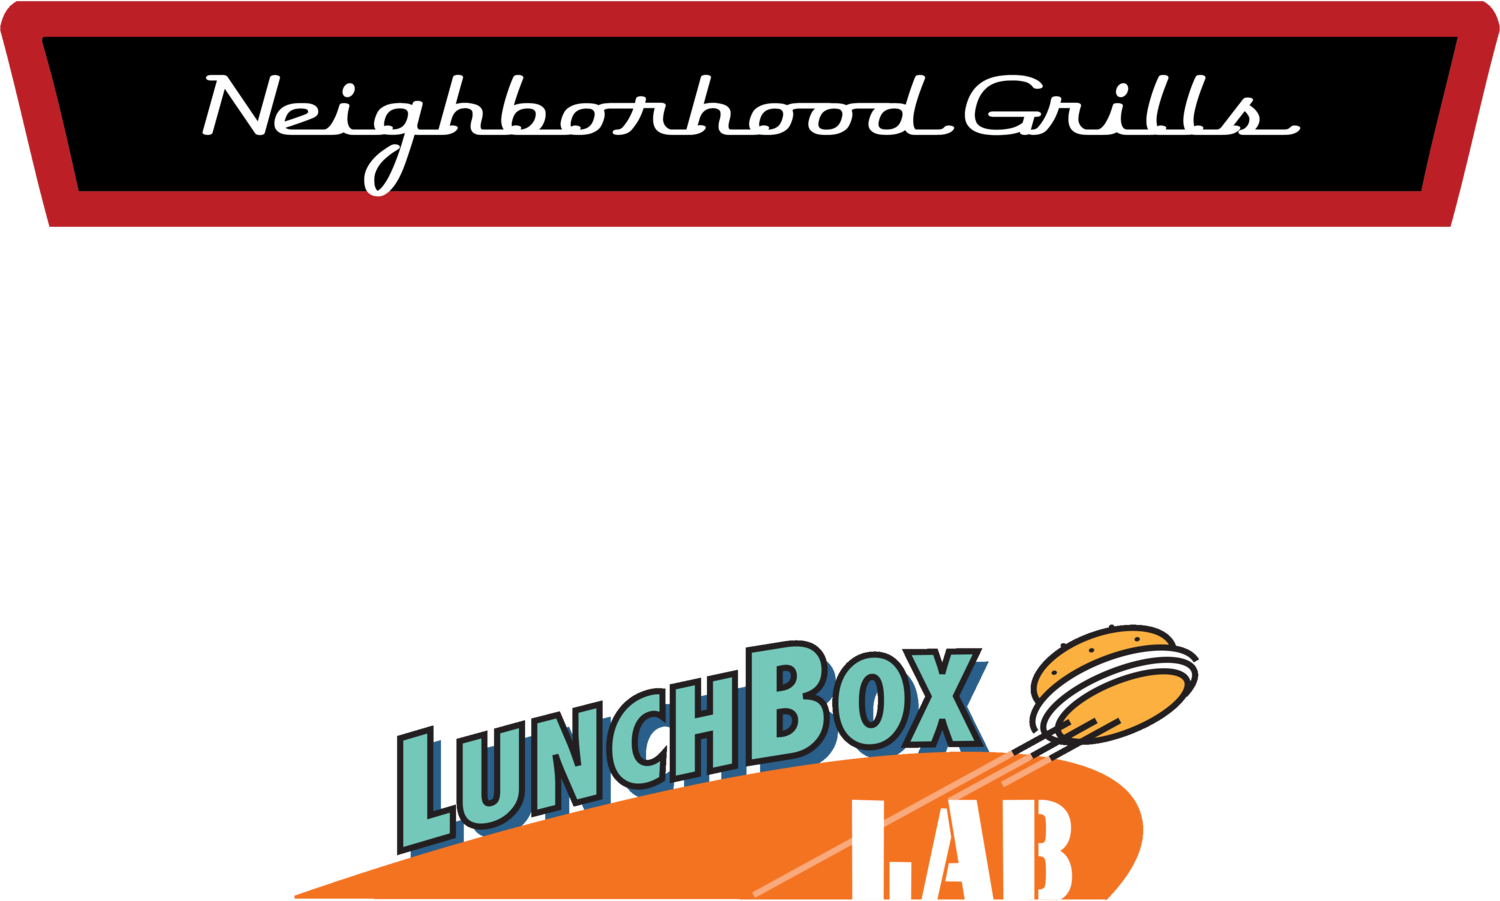 Neighborhood Grills Catering